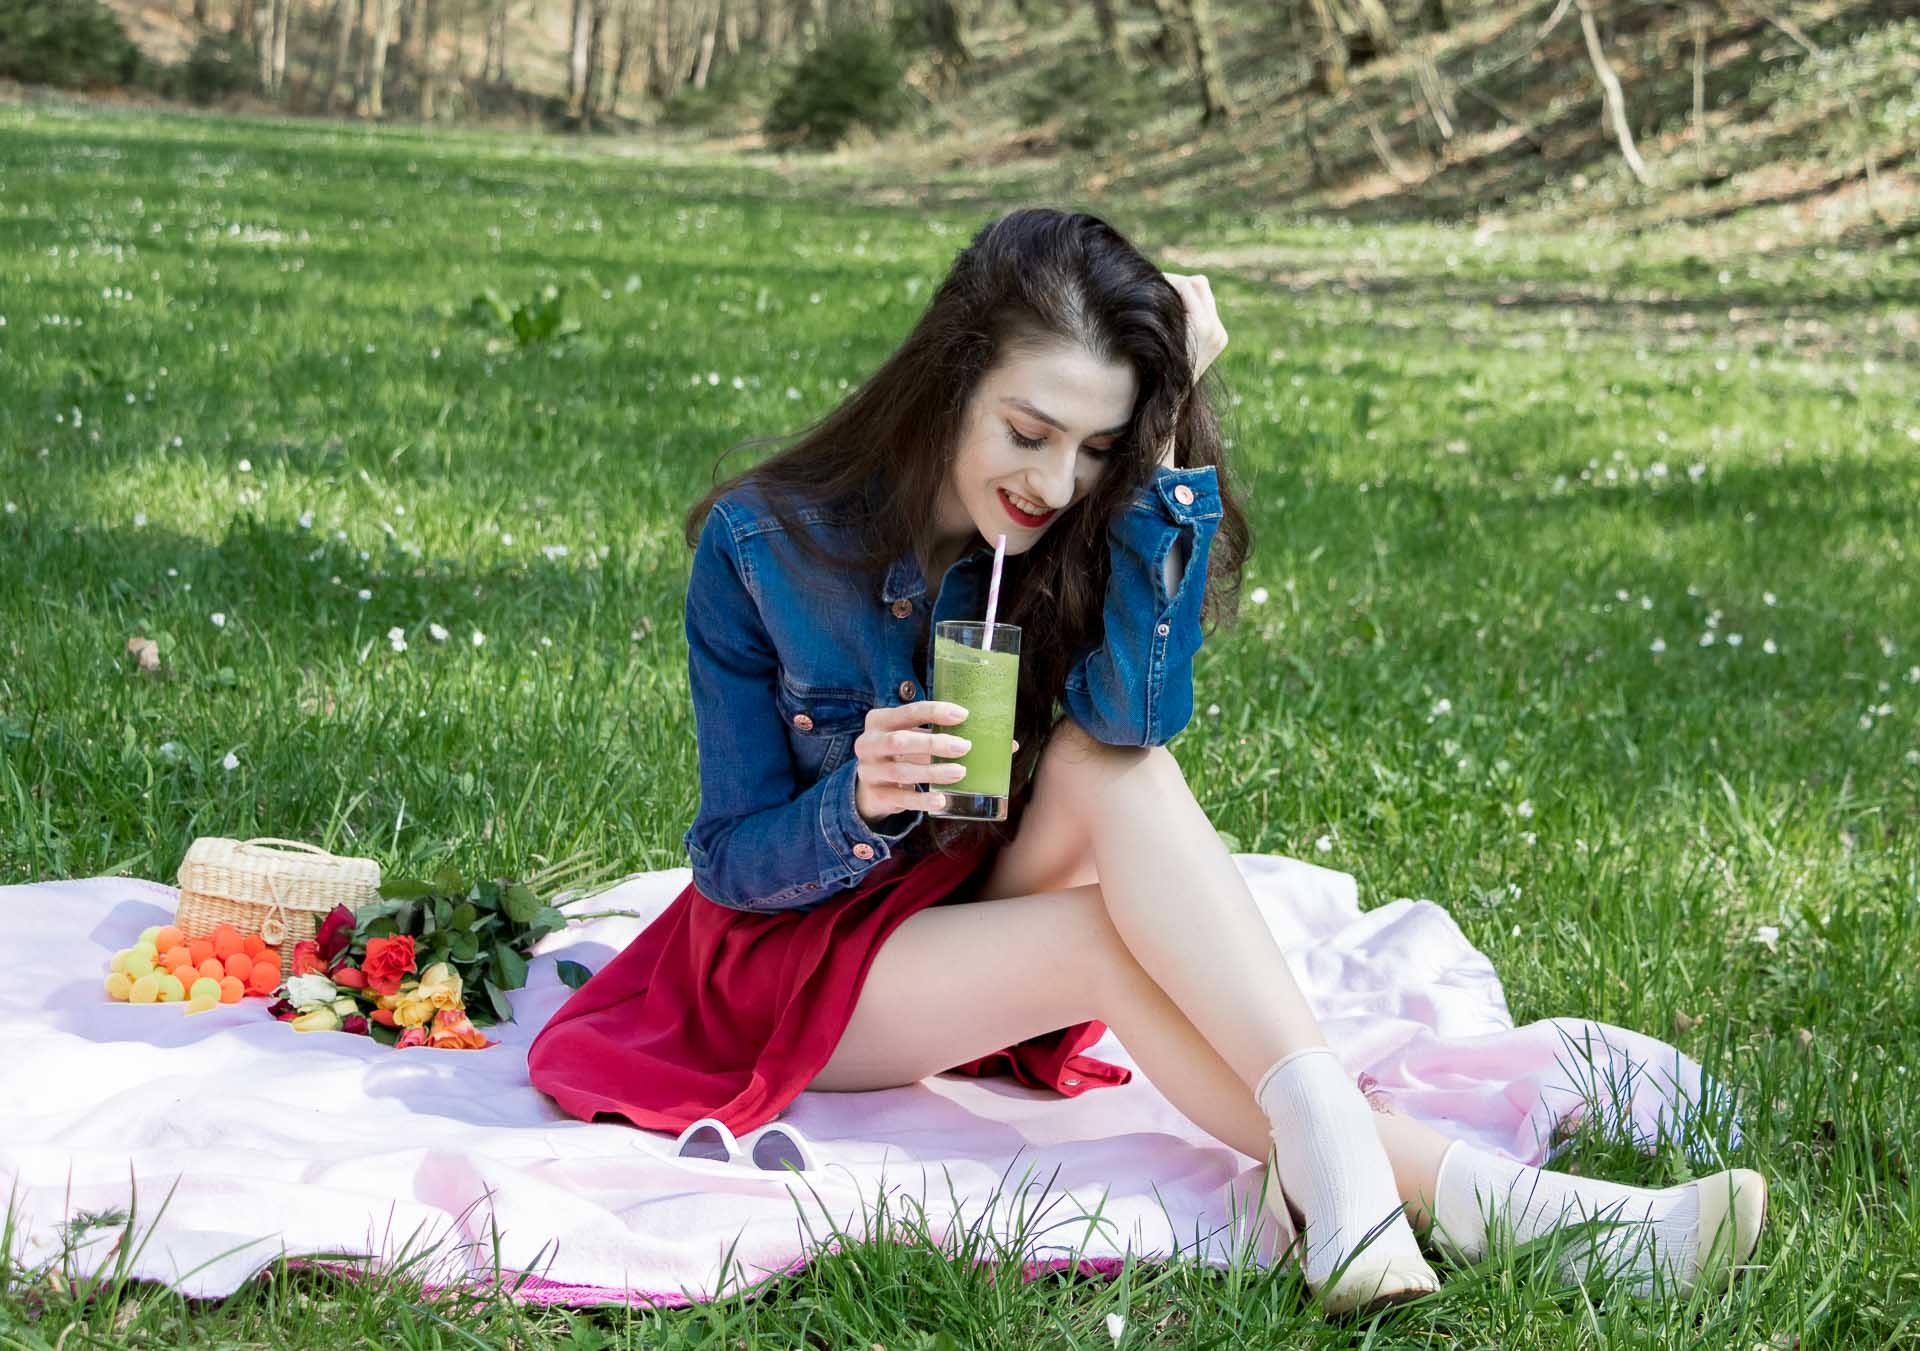 Veronika Lipar Fashion Blogger of Brunette from Wall Street wearing red dress, dangling belt, blue denim jacket, white socks and white pumps, Sam Eldeman x Le Specs, white lolita cat-eye sunglasses, Nannacay raffia basket bag while holding green smoothie on the pink picnic blanket